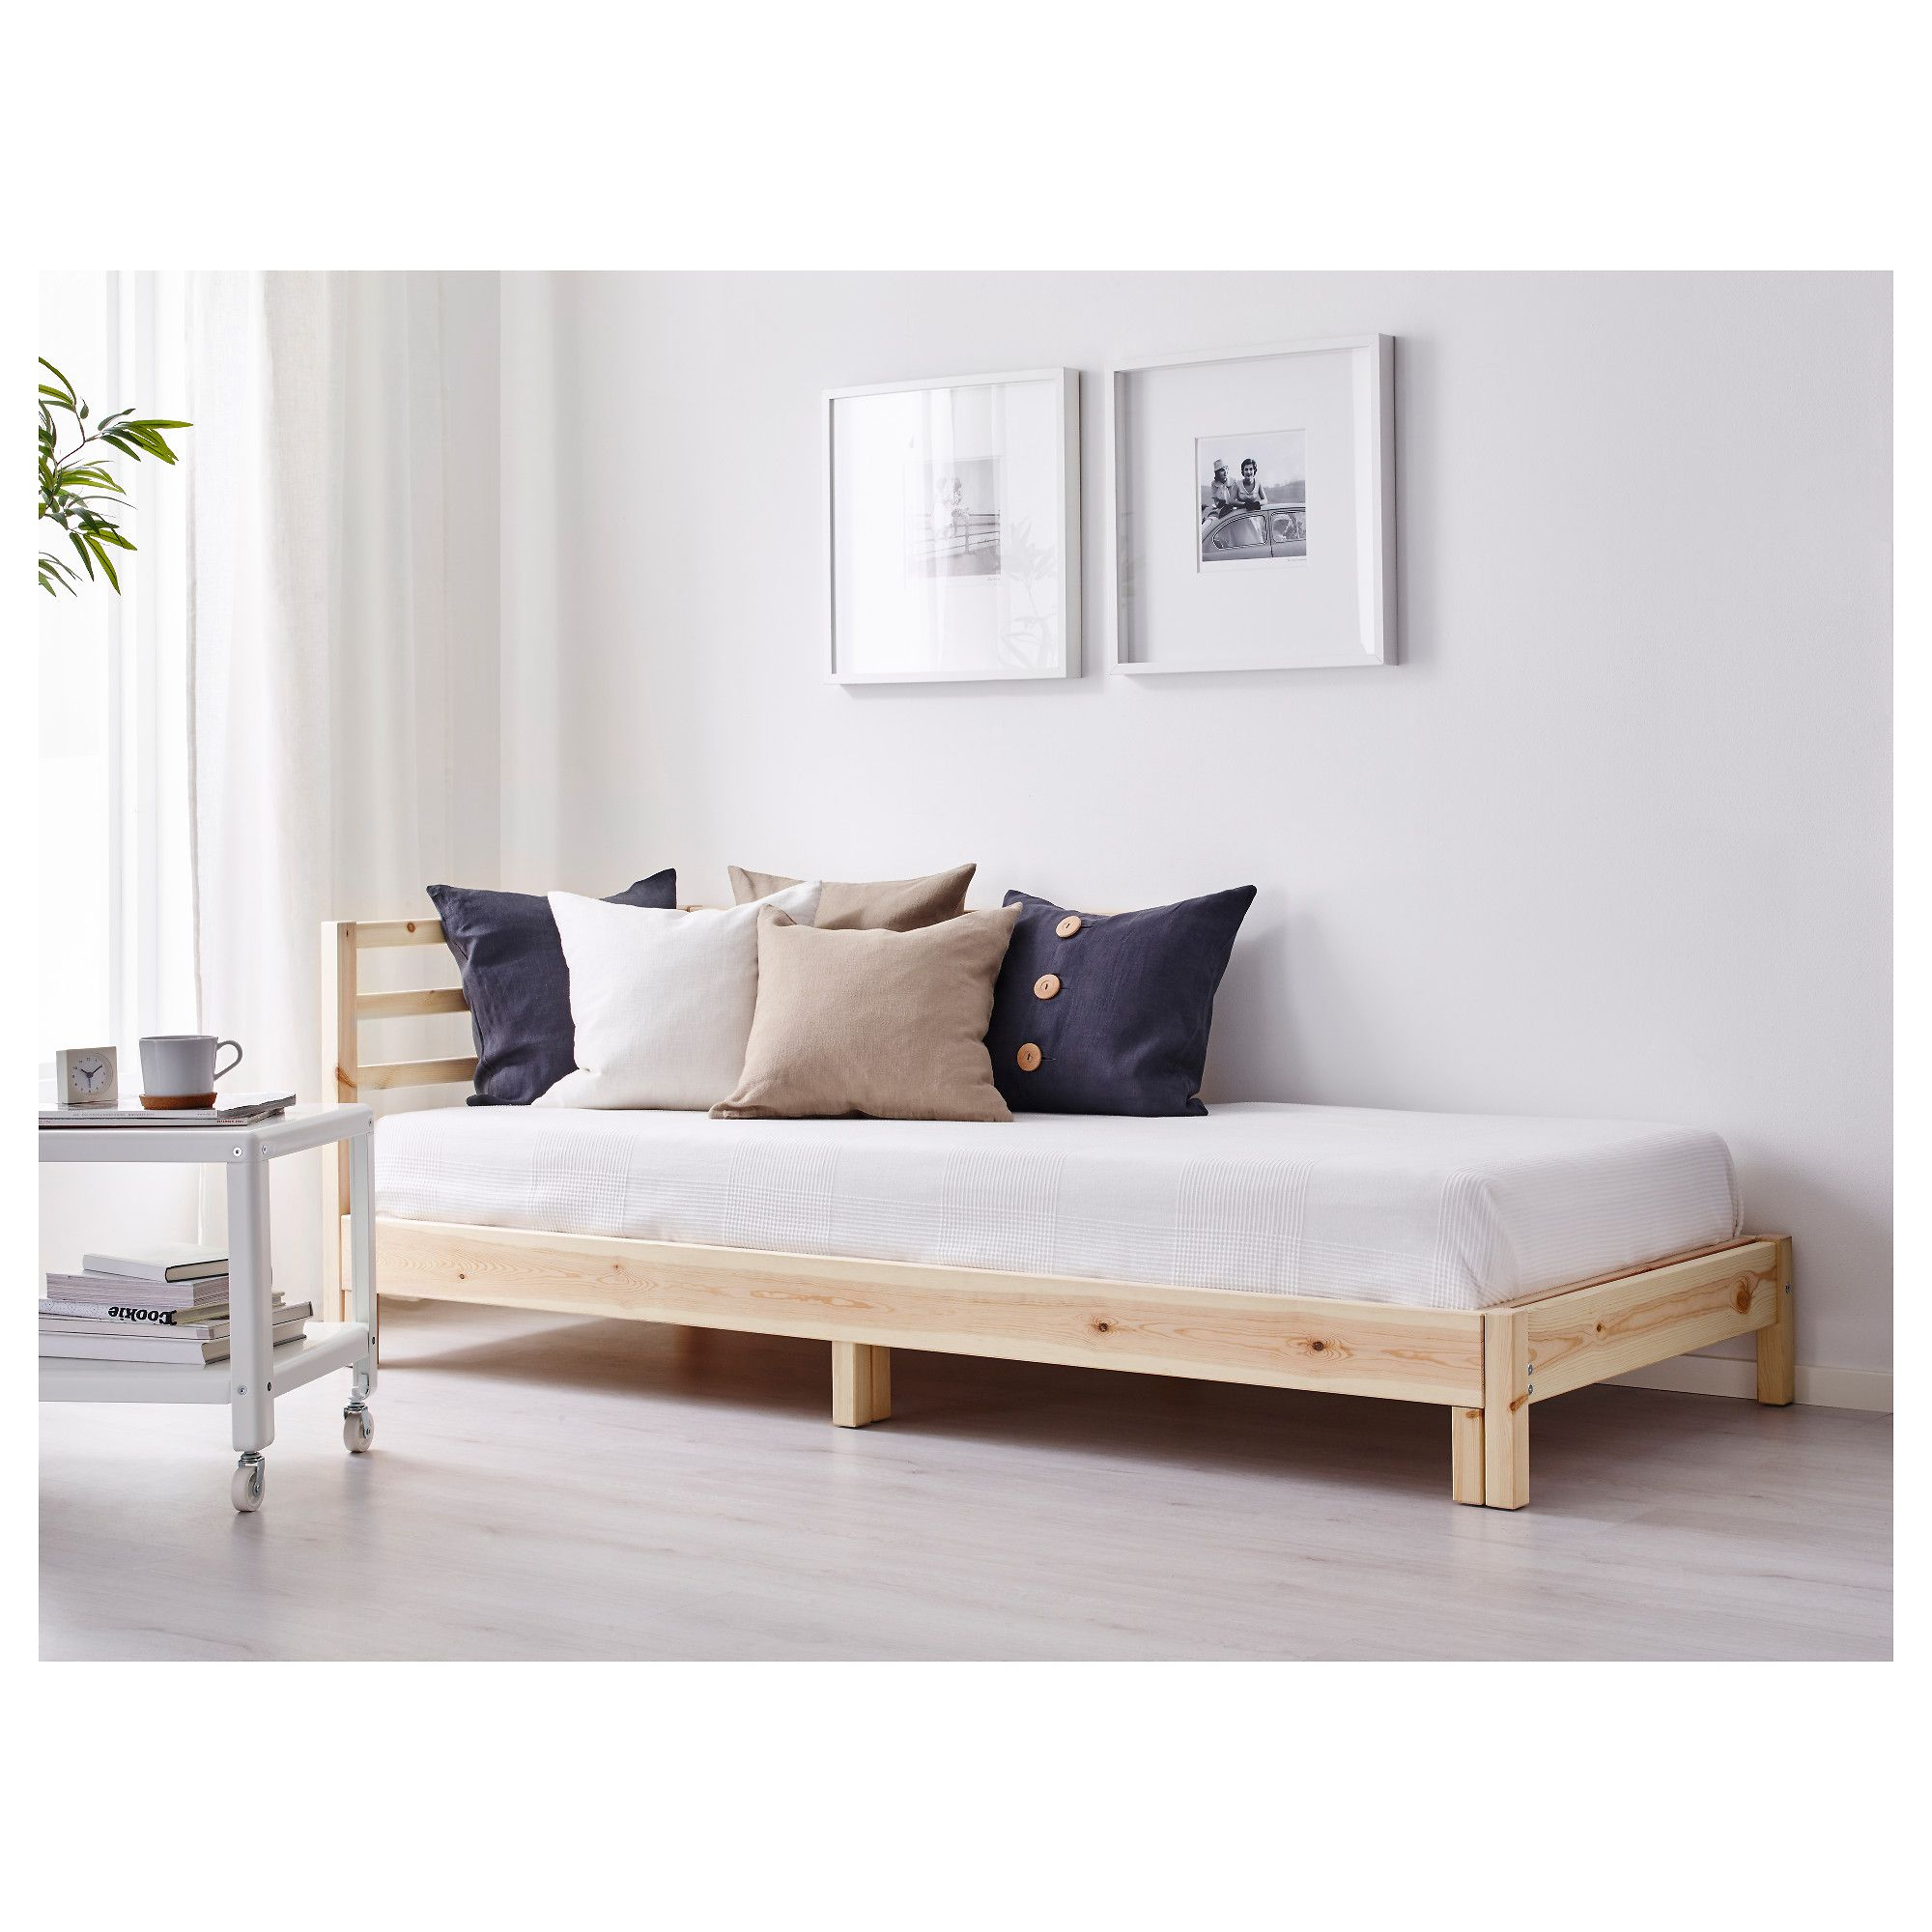 Ikea Tarva Day Bed With 2 Mattresses Two Functions In One Chaise Longue By And Night